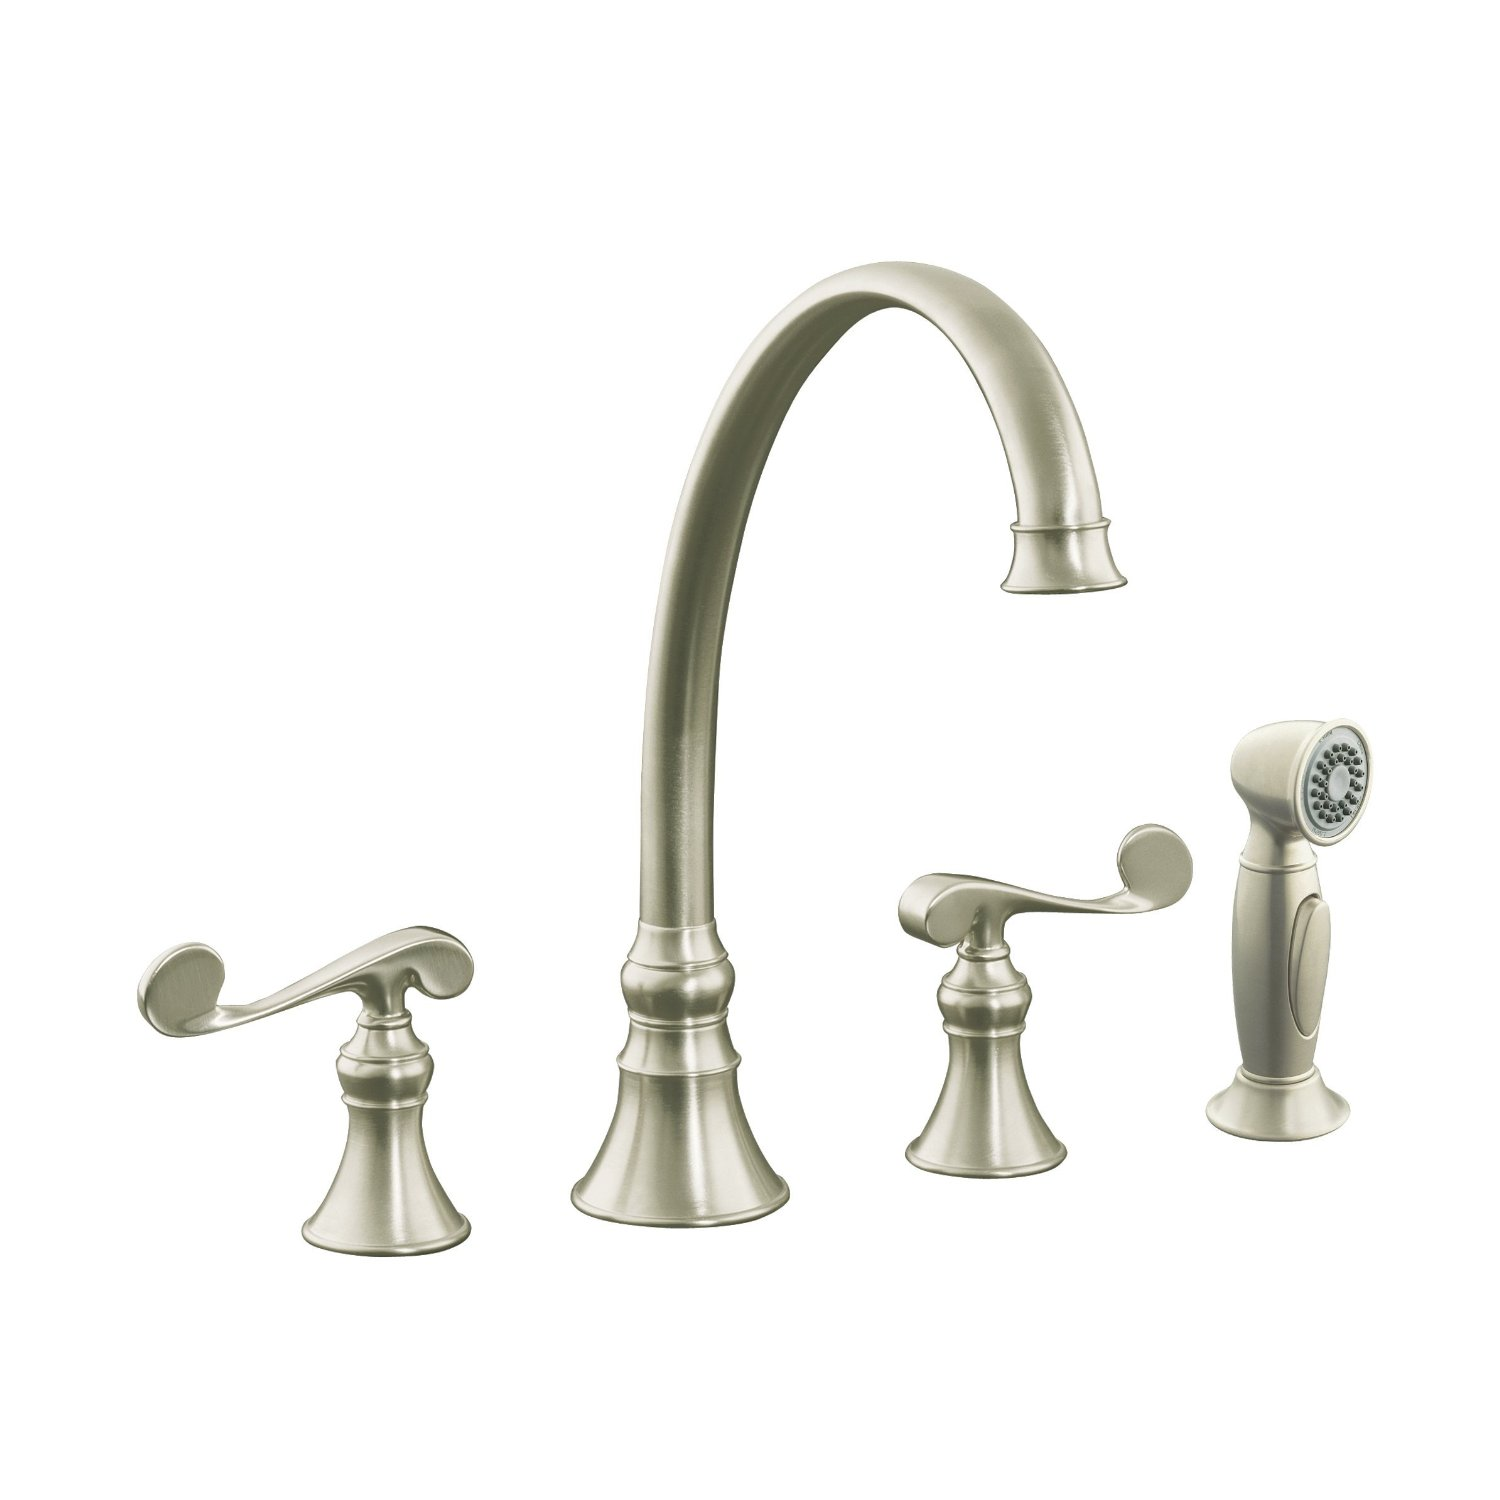 Shop for best kohler k 16109 4 bn revival kitchen sink for Best faucet for kitchen sink